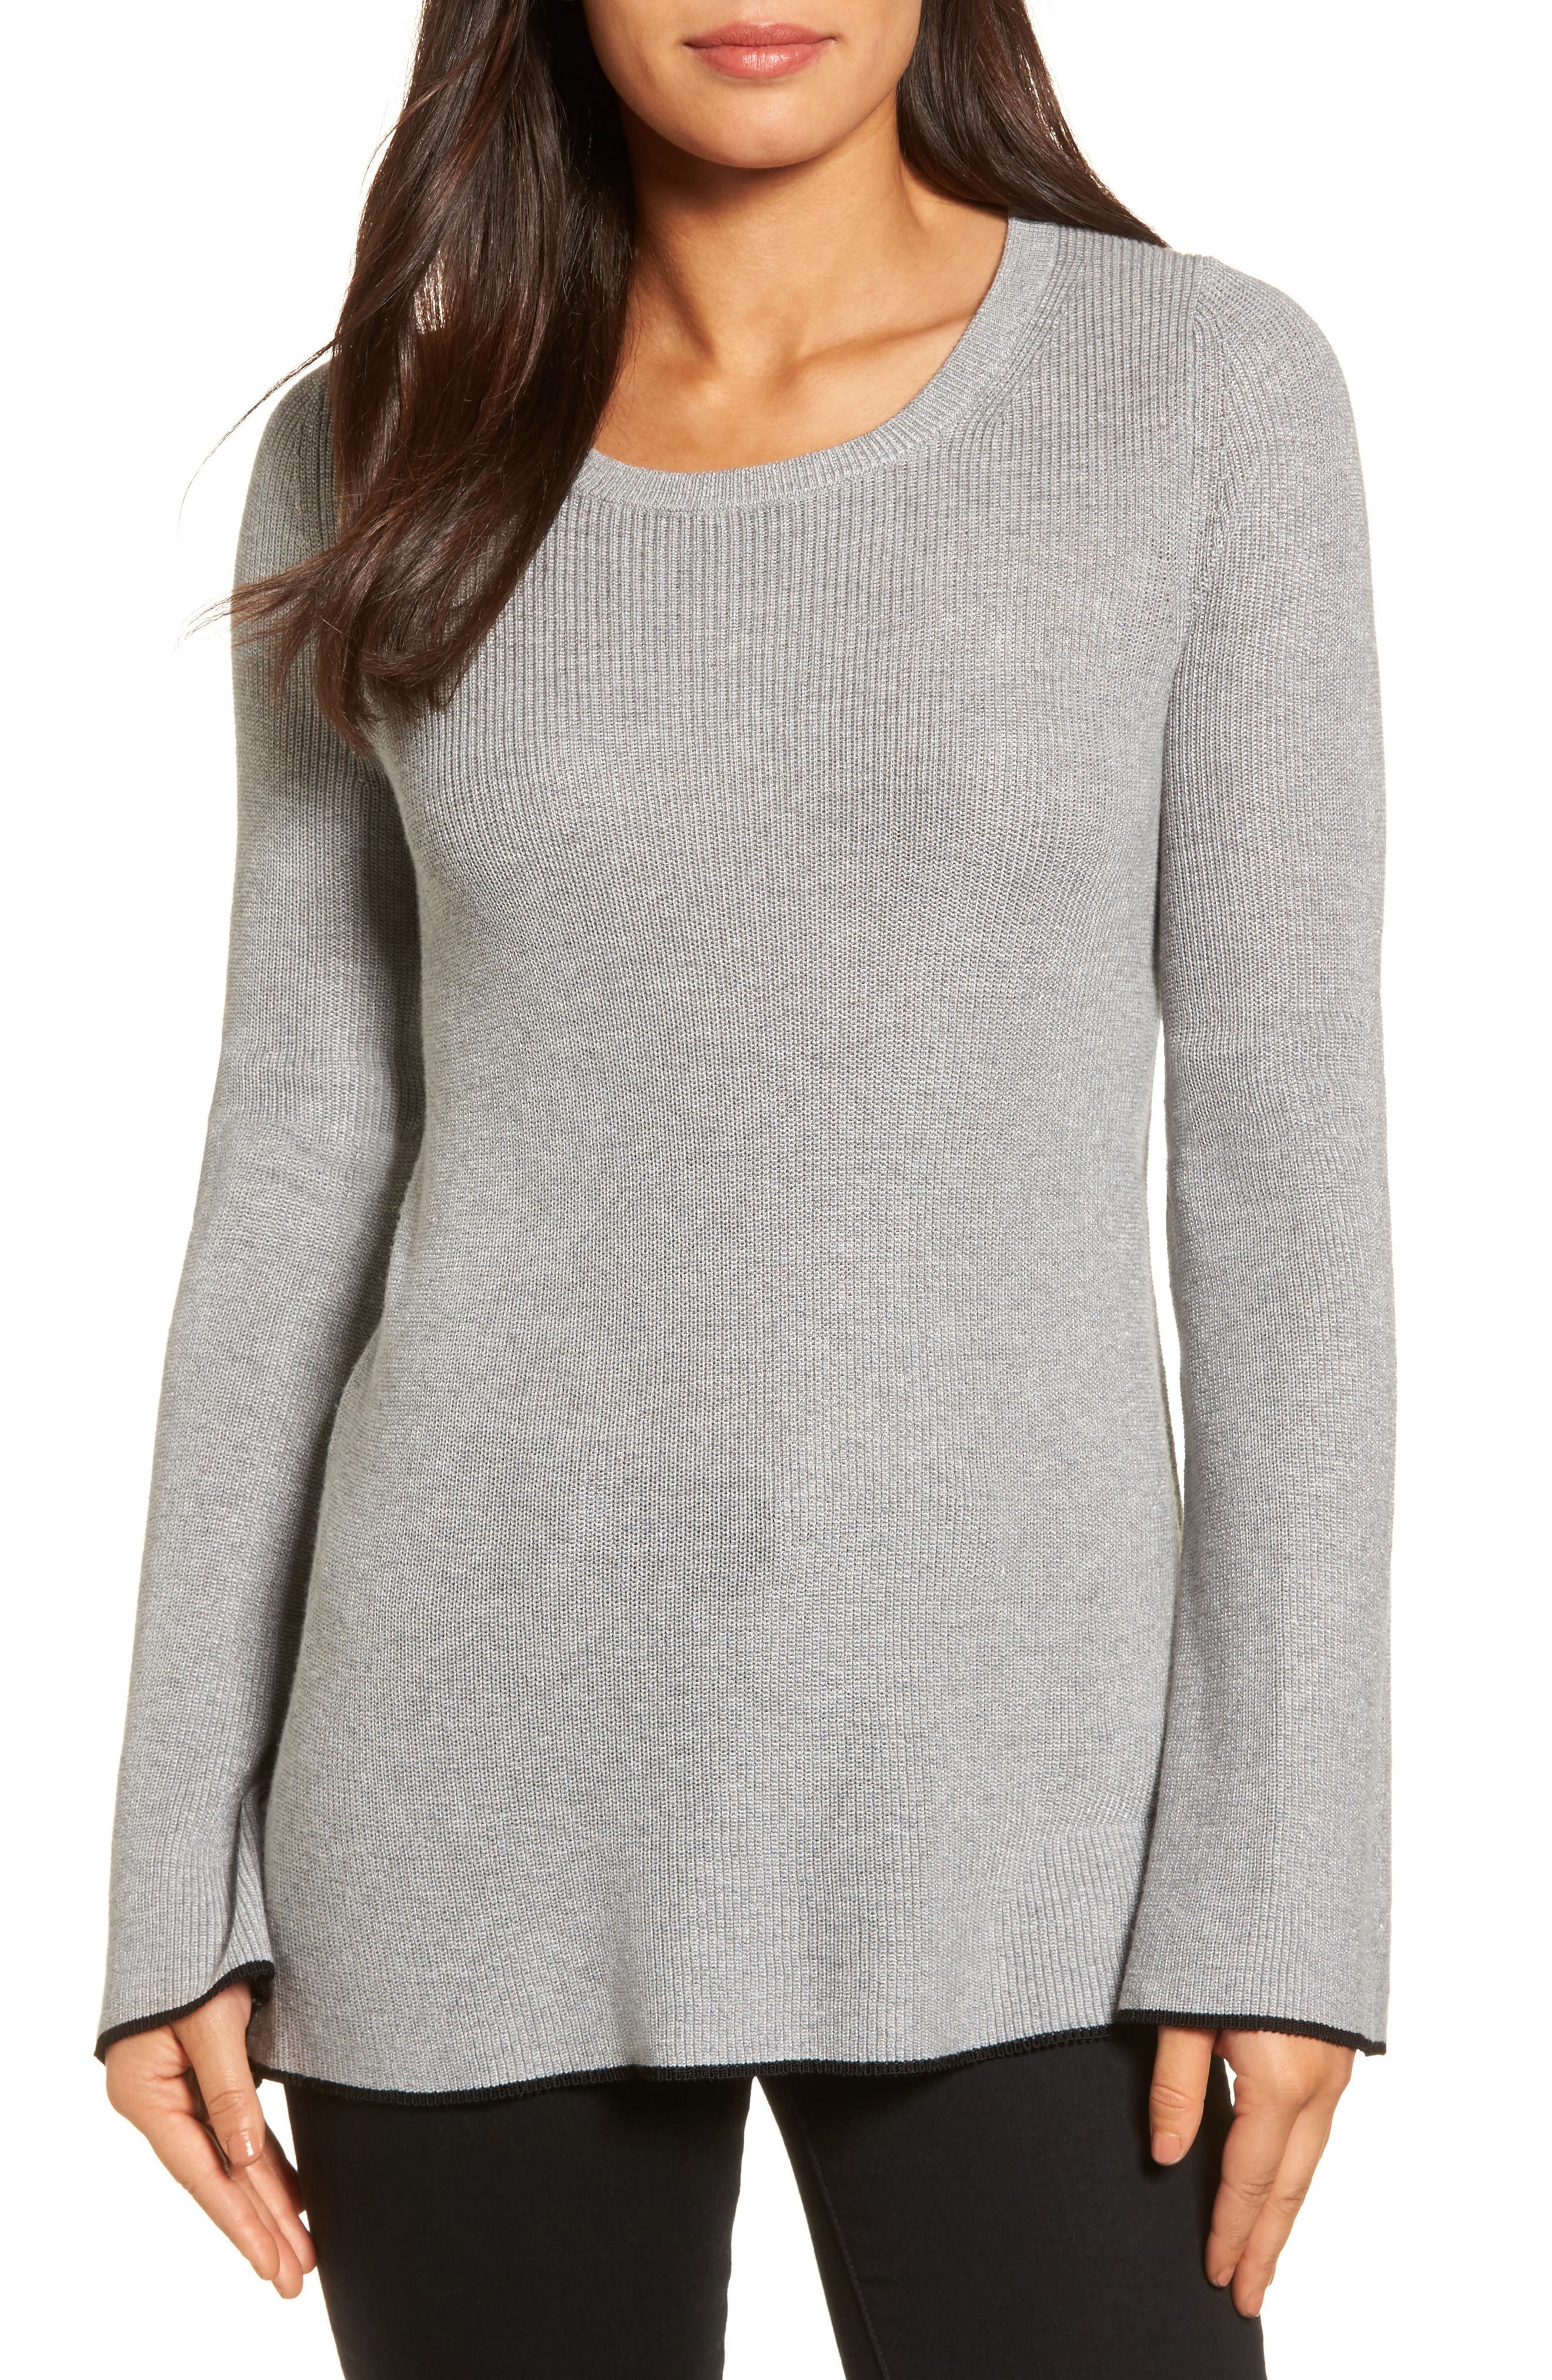 Alternate Image 1 Selected - Vince Camuto Tipped Bell Sleeve Sweater (Regular & Petite)